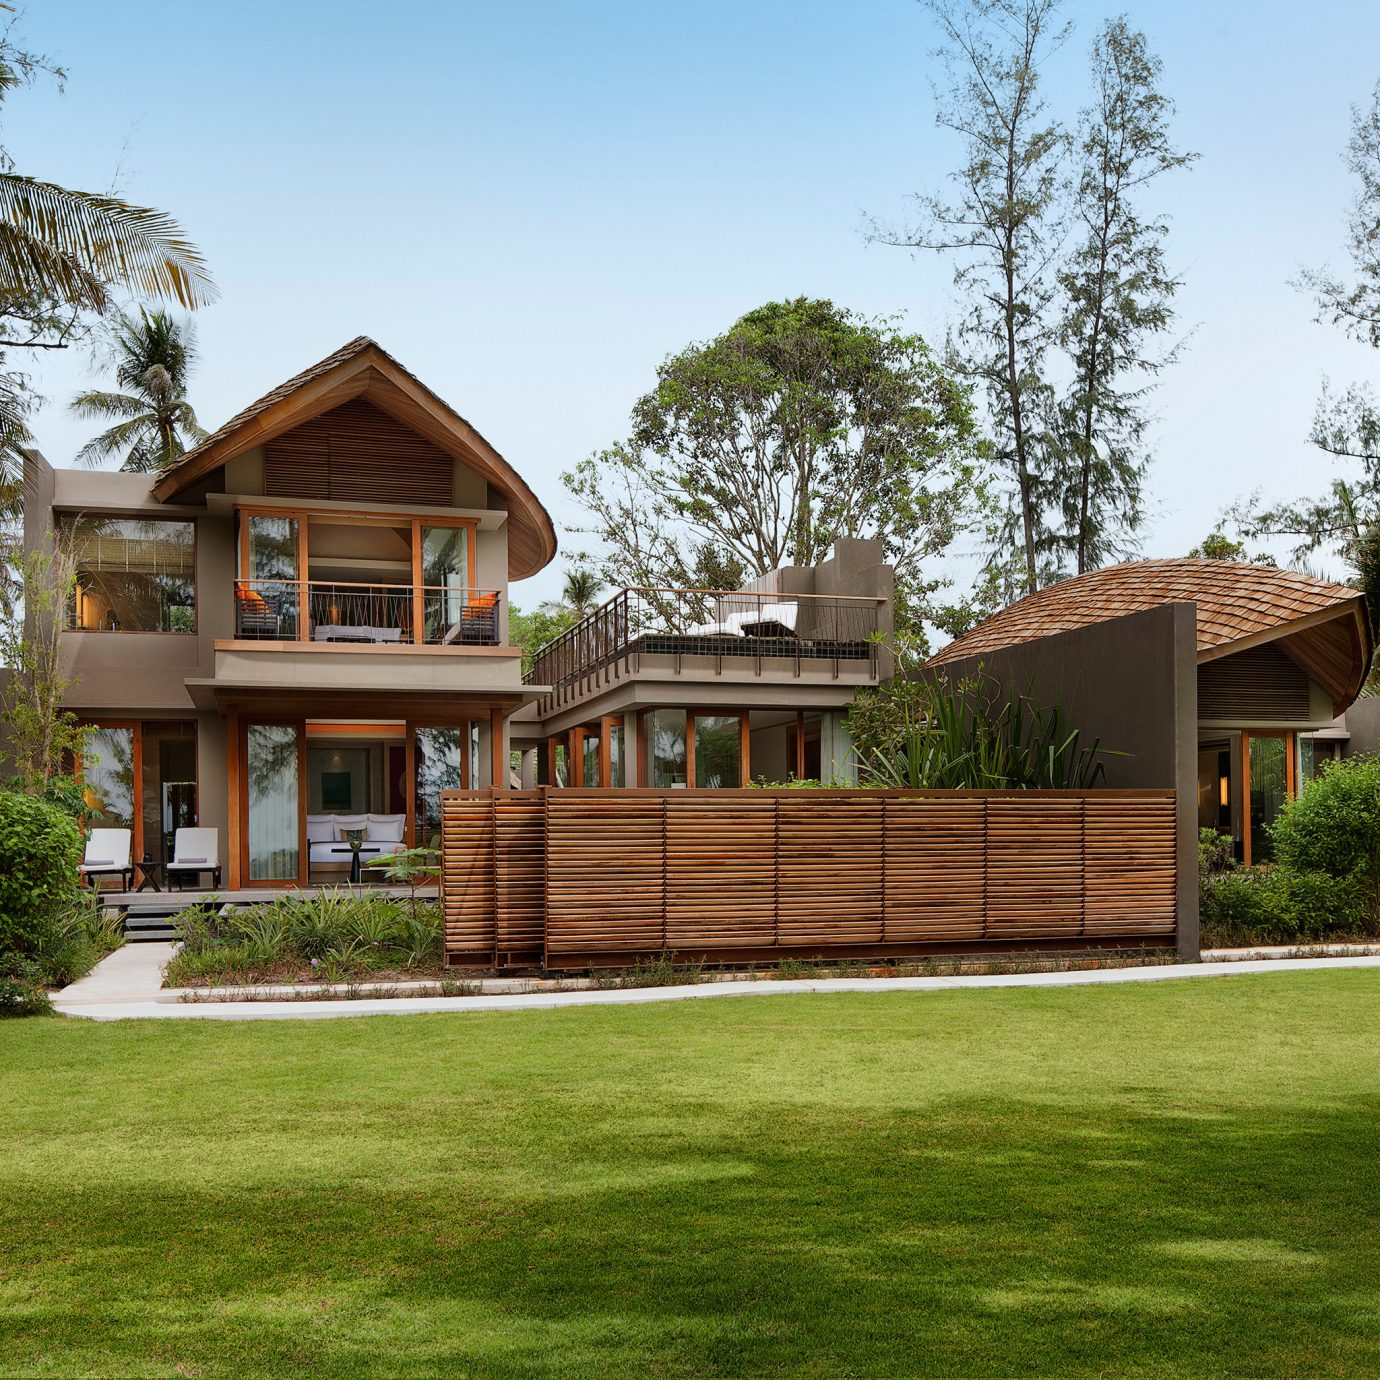 Architecture Buildings Exterior Grounds Luxury Romantic grass tree sky house property home building lawn residential area backyard log cabin Villa mansion cottage Resort yard outdoor structure farmhouse residential